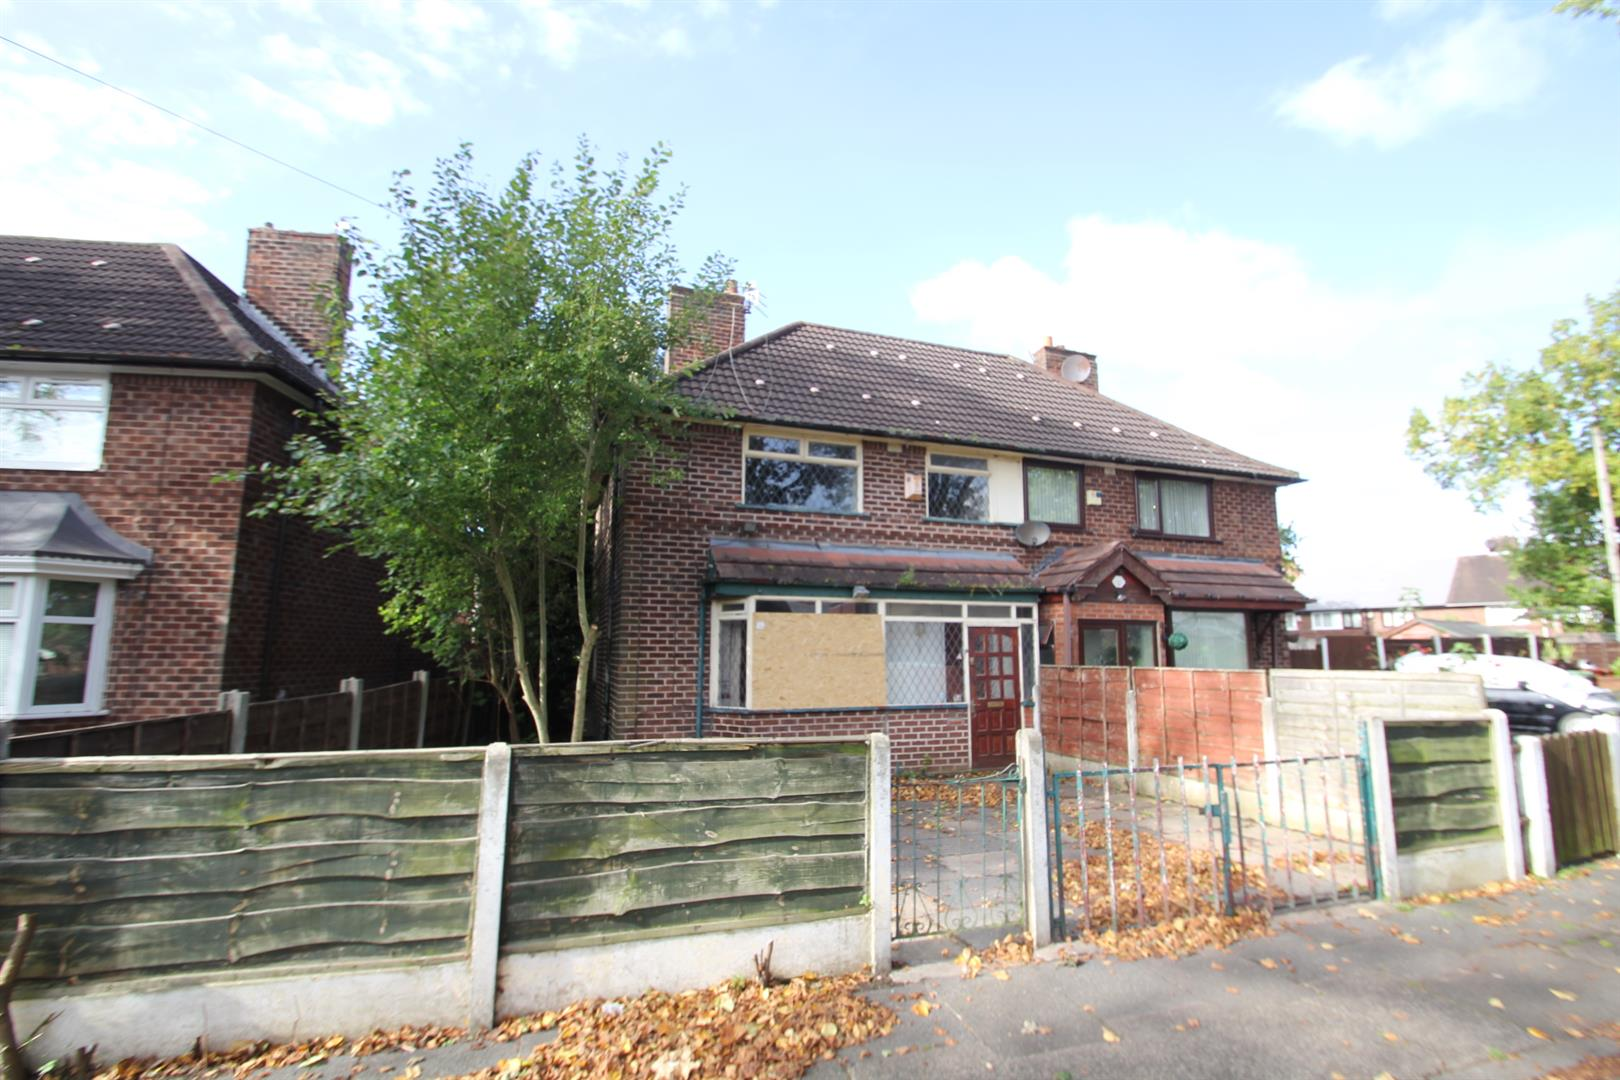 3 Bedroom House - Semi-Detached For Sale